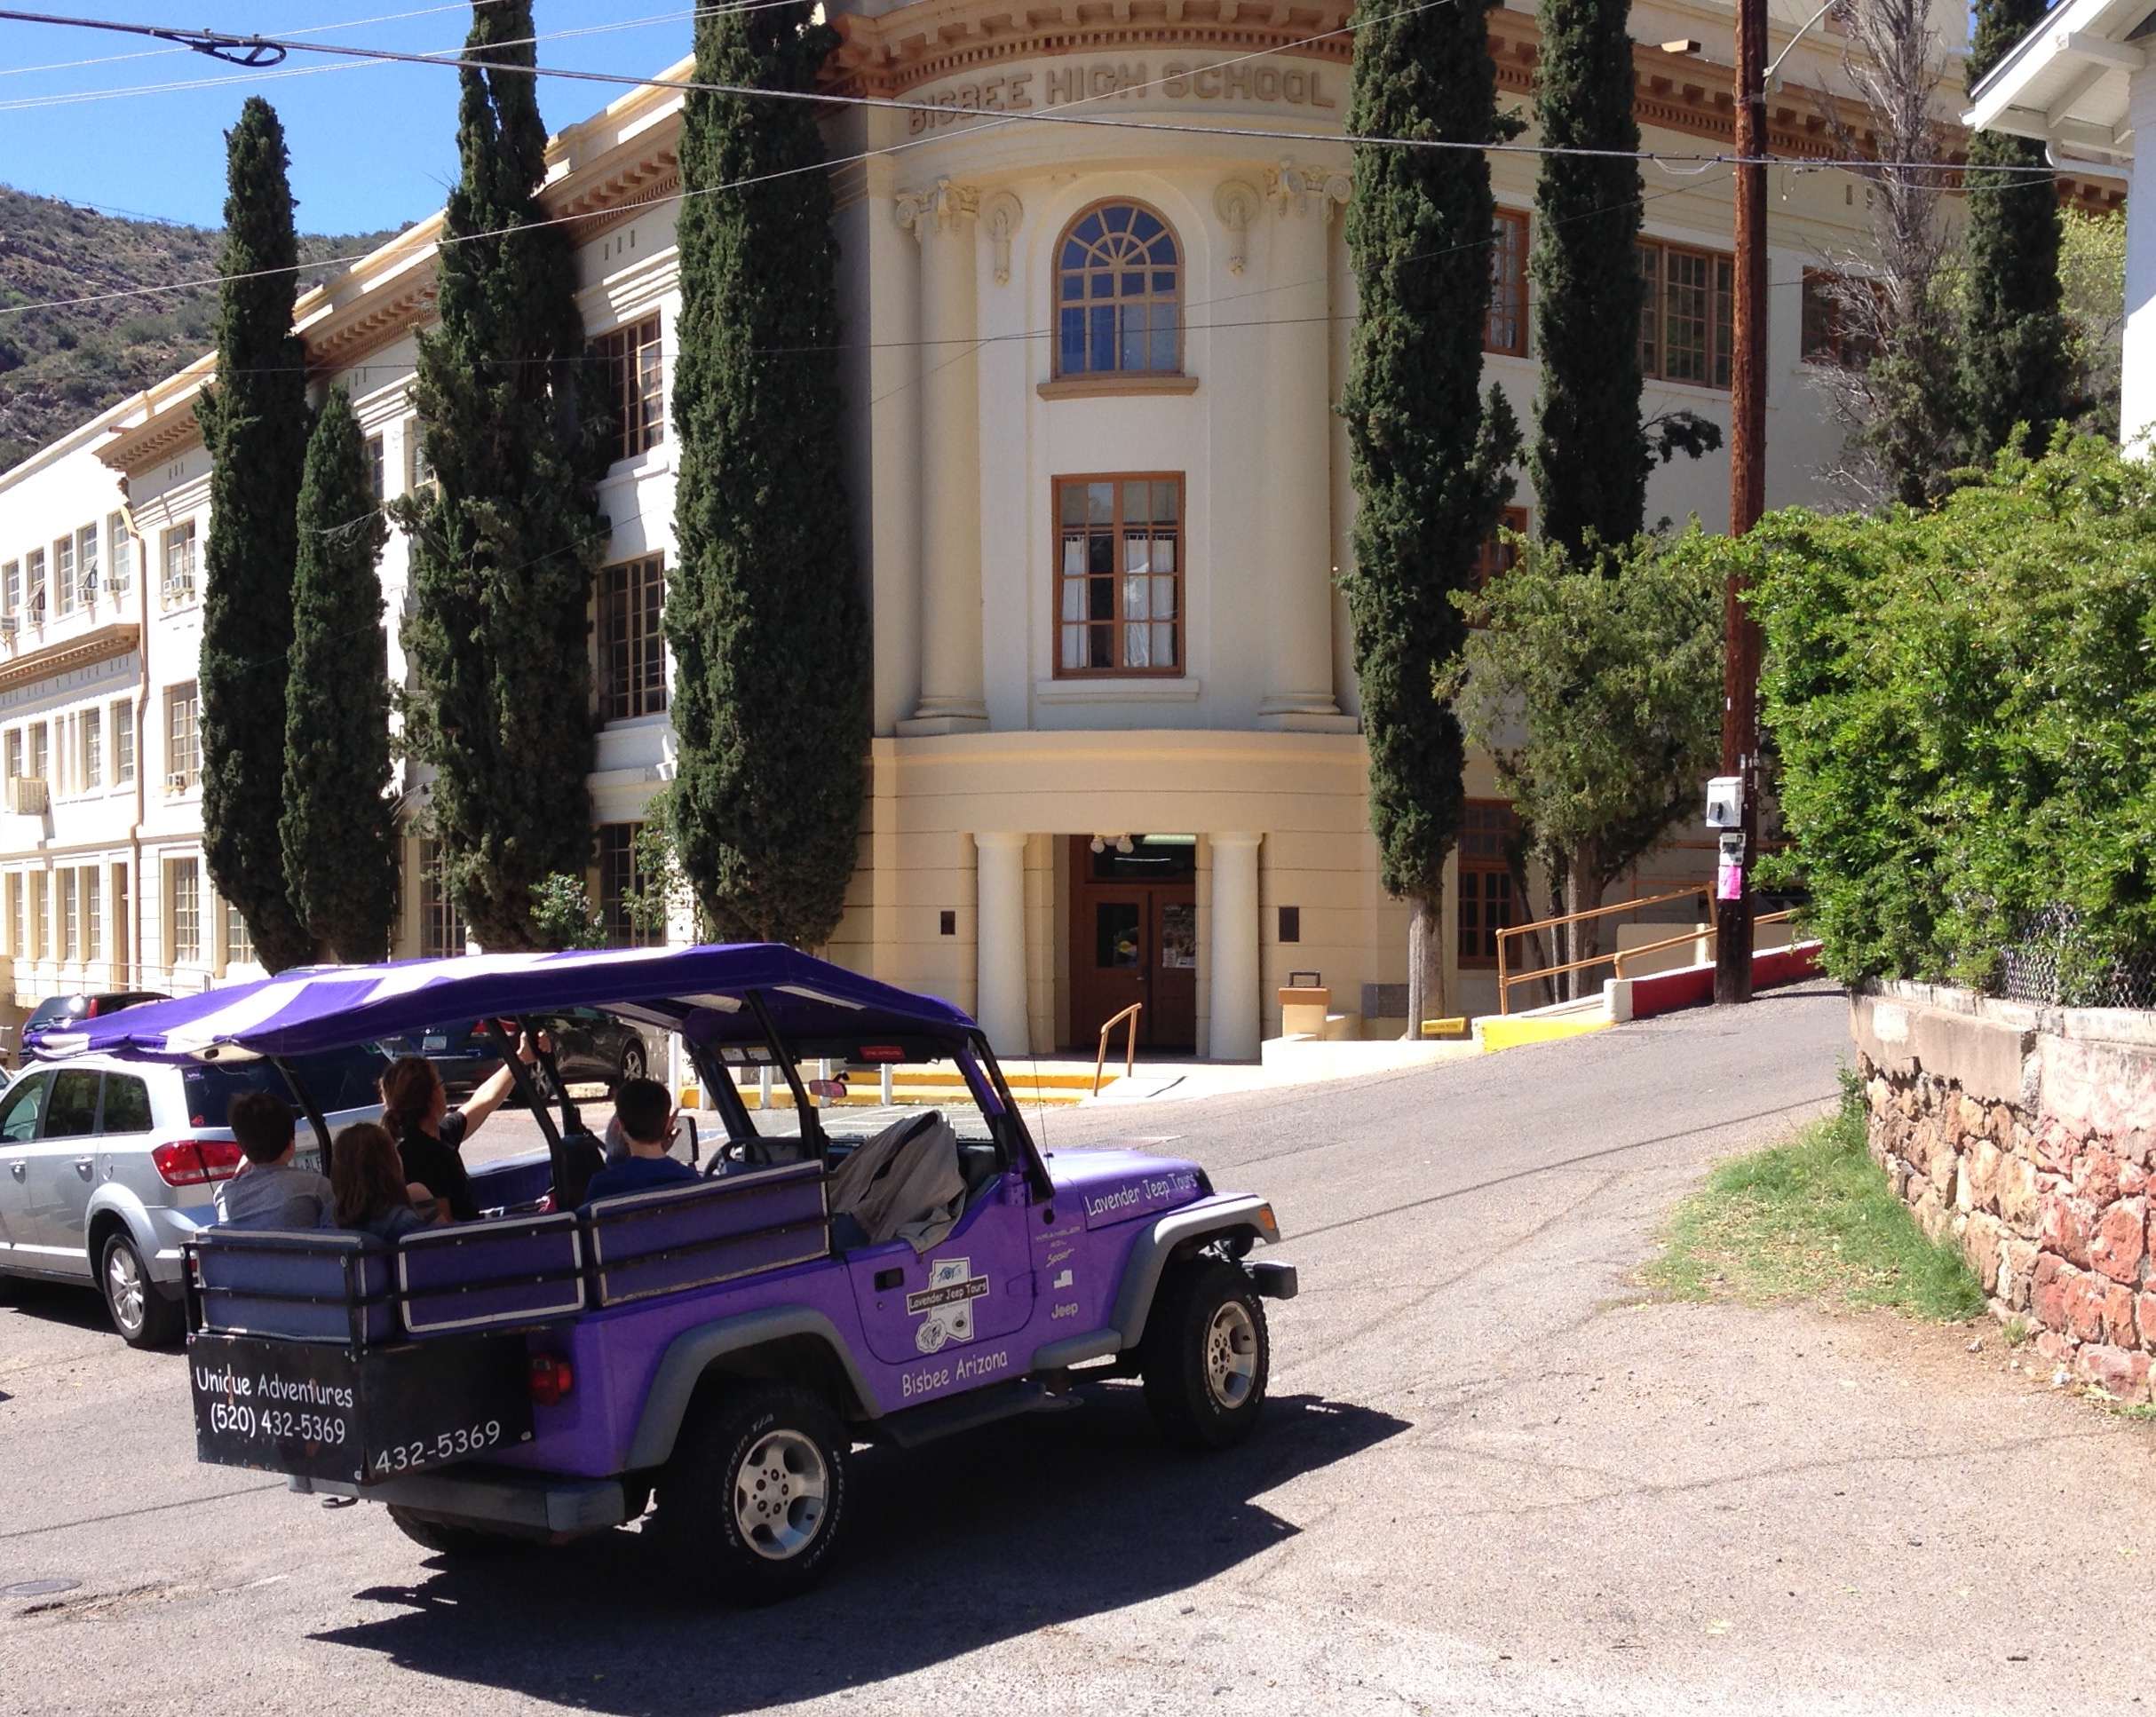 Greetings Lavender Jeep Tours - Bisbee car show